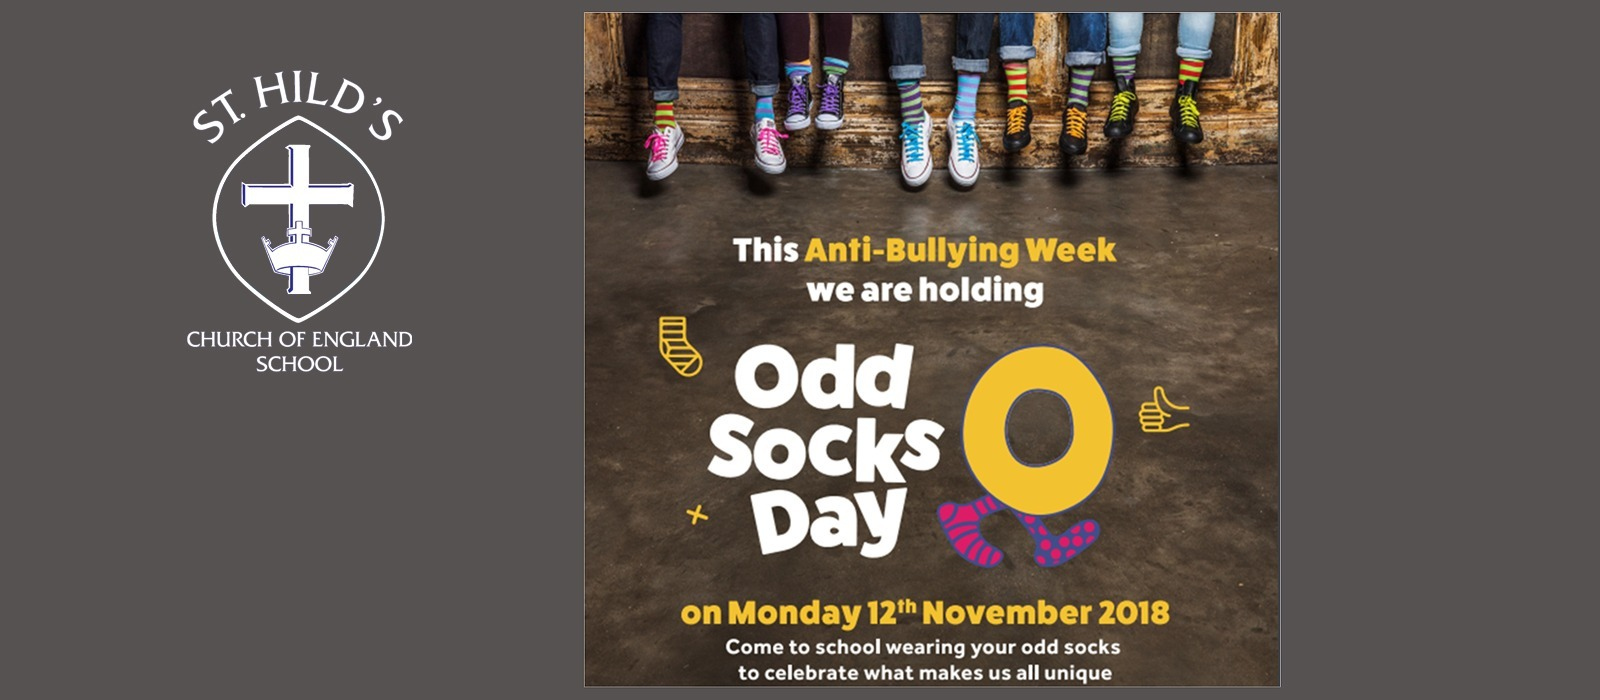 Supporting image for Odd Socks Day for Anti-Bullying Week